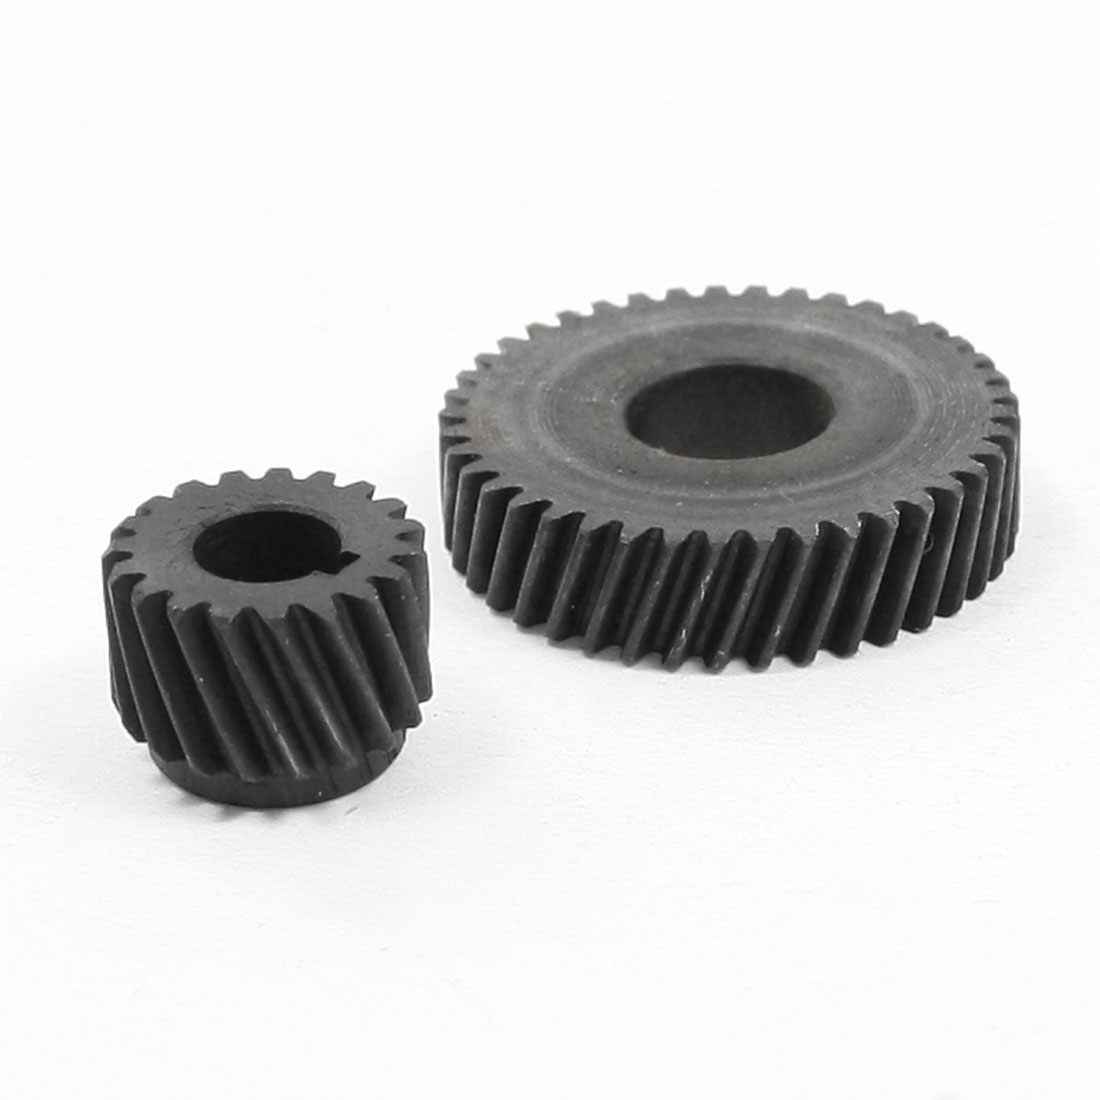 Repair Part Spiral Bevel Gear Pinion Set for CM-4SA2 Cutting Machine